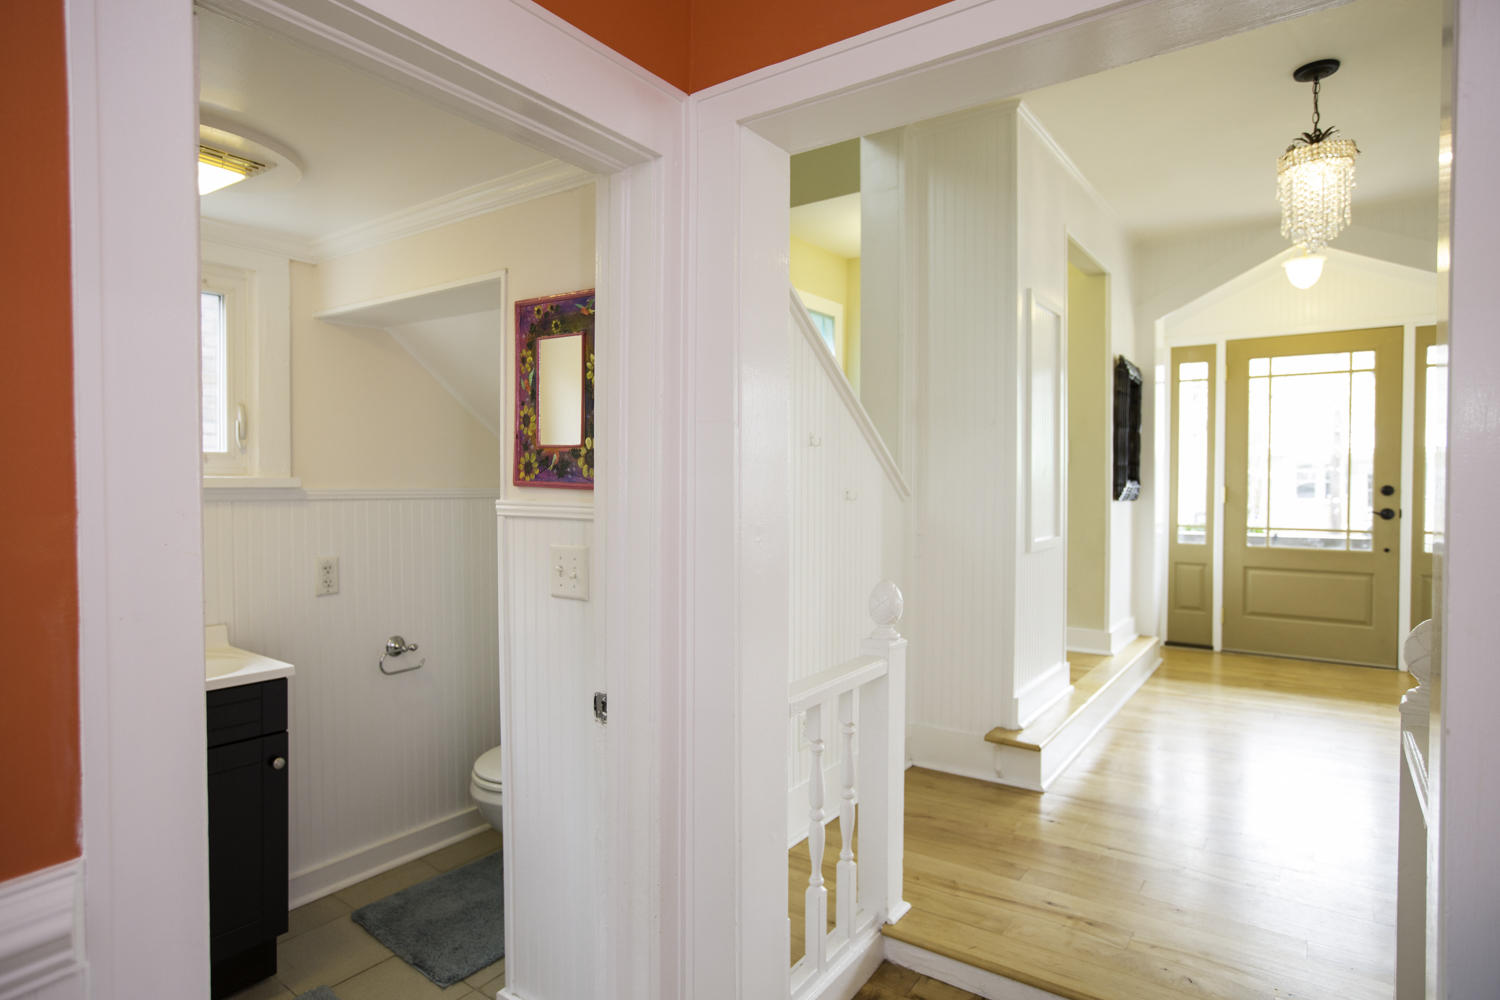 Home for sale 921 Rutledge Avenue, Wagener Terrace, Downtown Charleston, SC